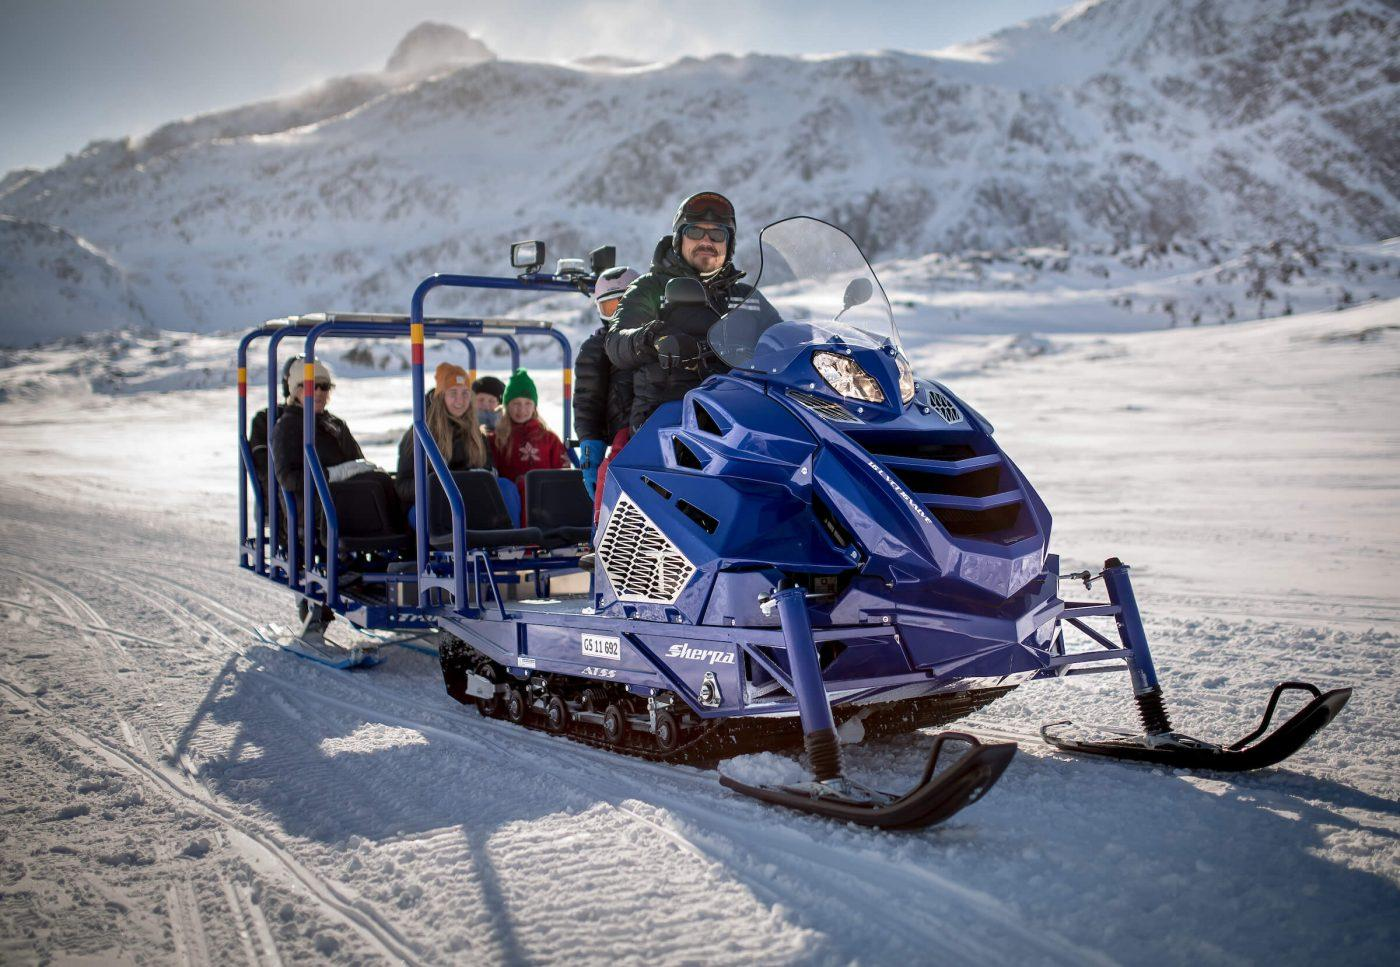 The snowmobile bus on the trail towards Sisimiut in Greenland. Photo by Mads Pihl, Visit Greenland